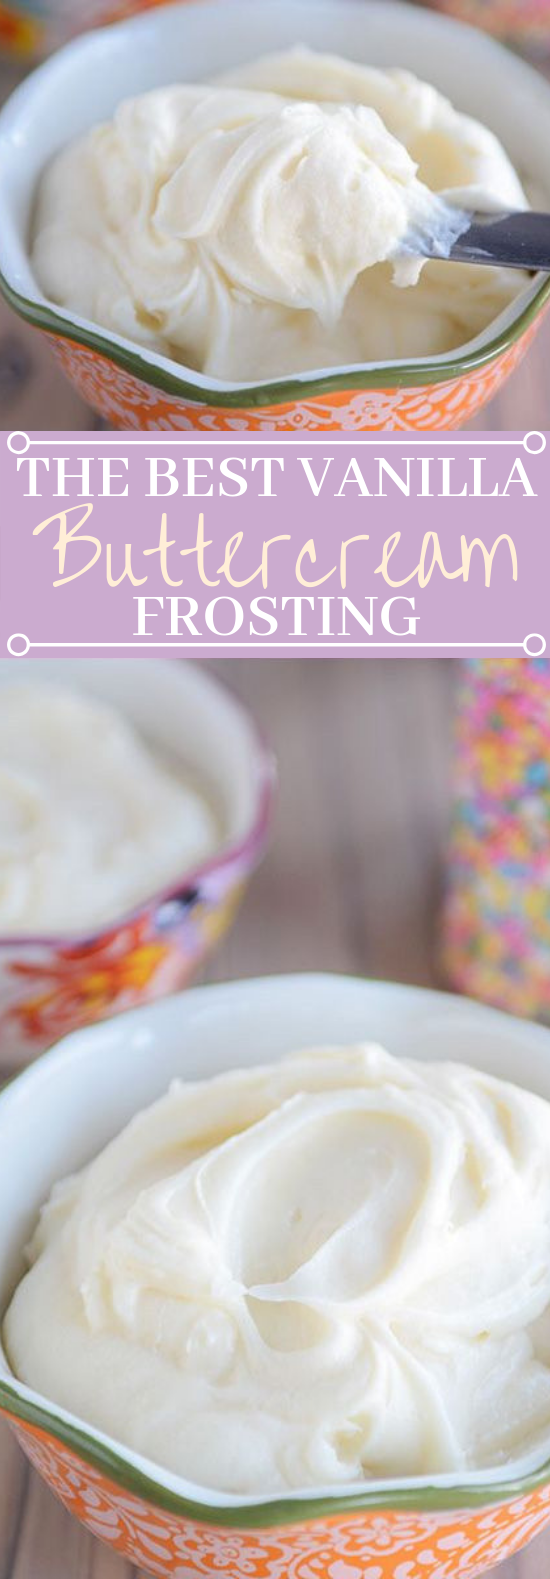 The Best Vanilla Buttercream Frosting #cookies #cake